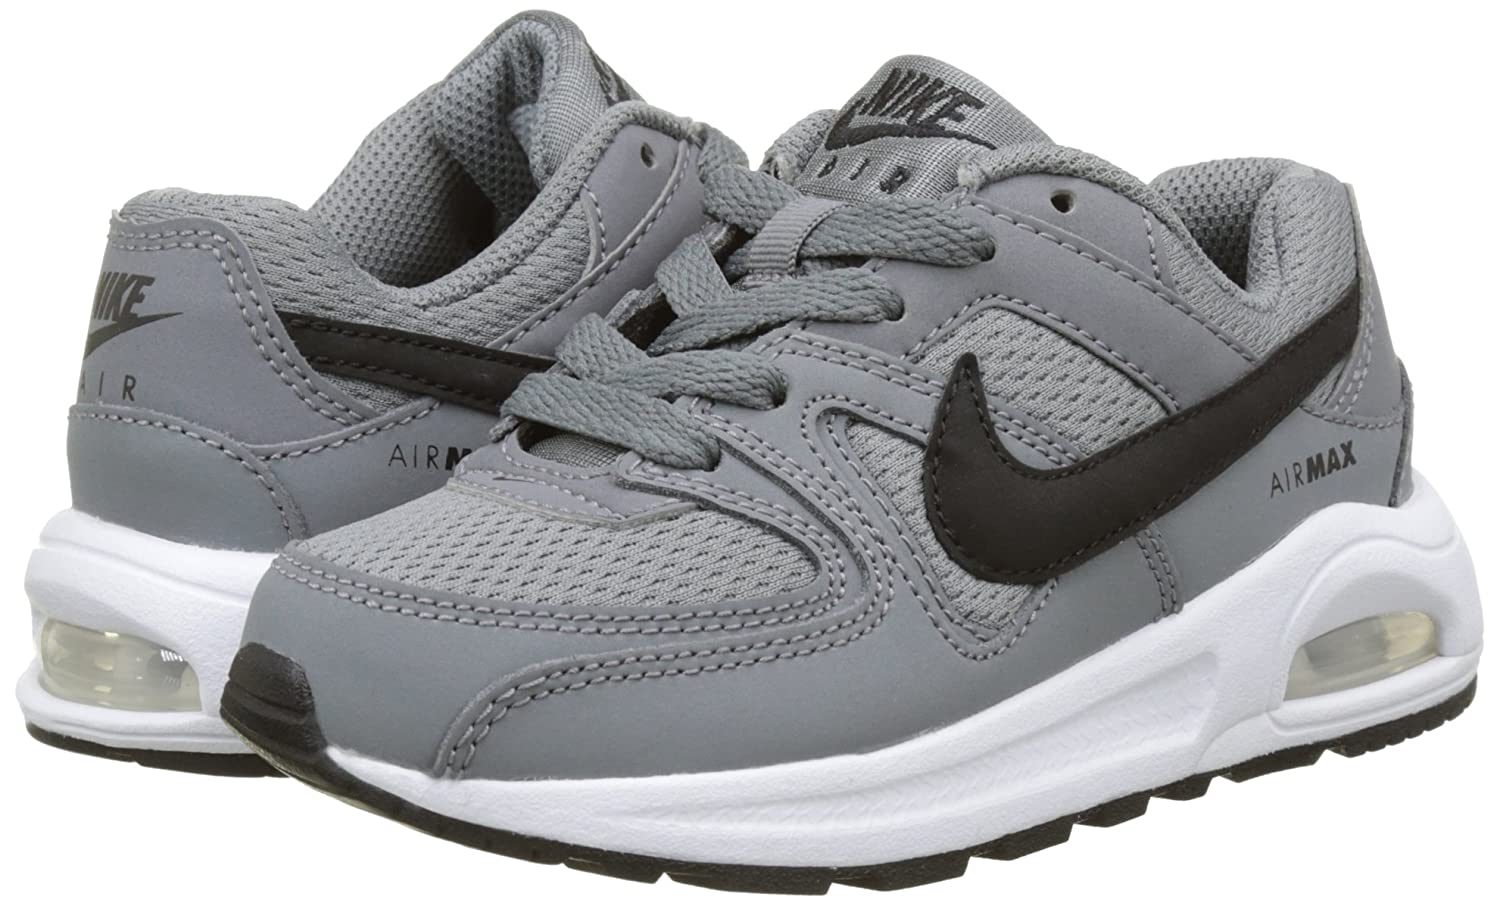 huge selection of 338f7 e5fad ... coupon for nike air max command flex ltr 844346 011 black schwarz weiß  weiß 48680 68734